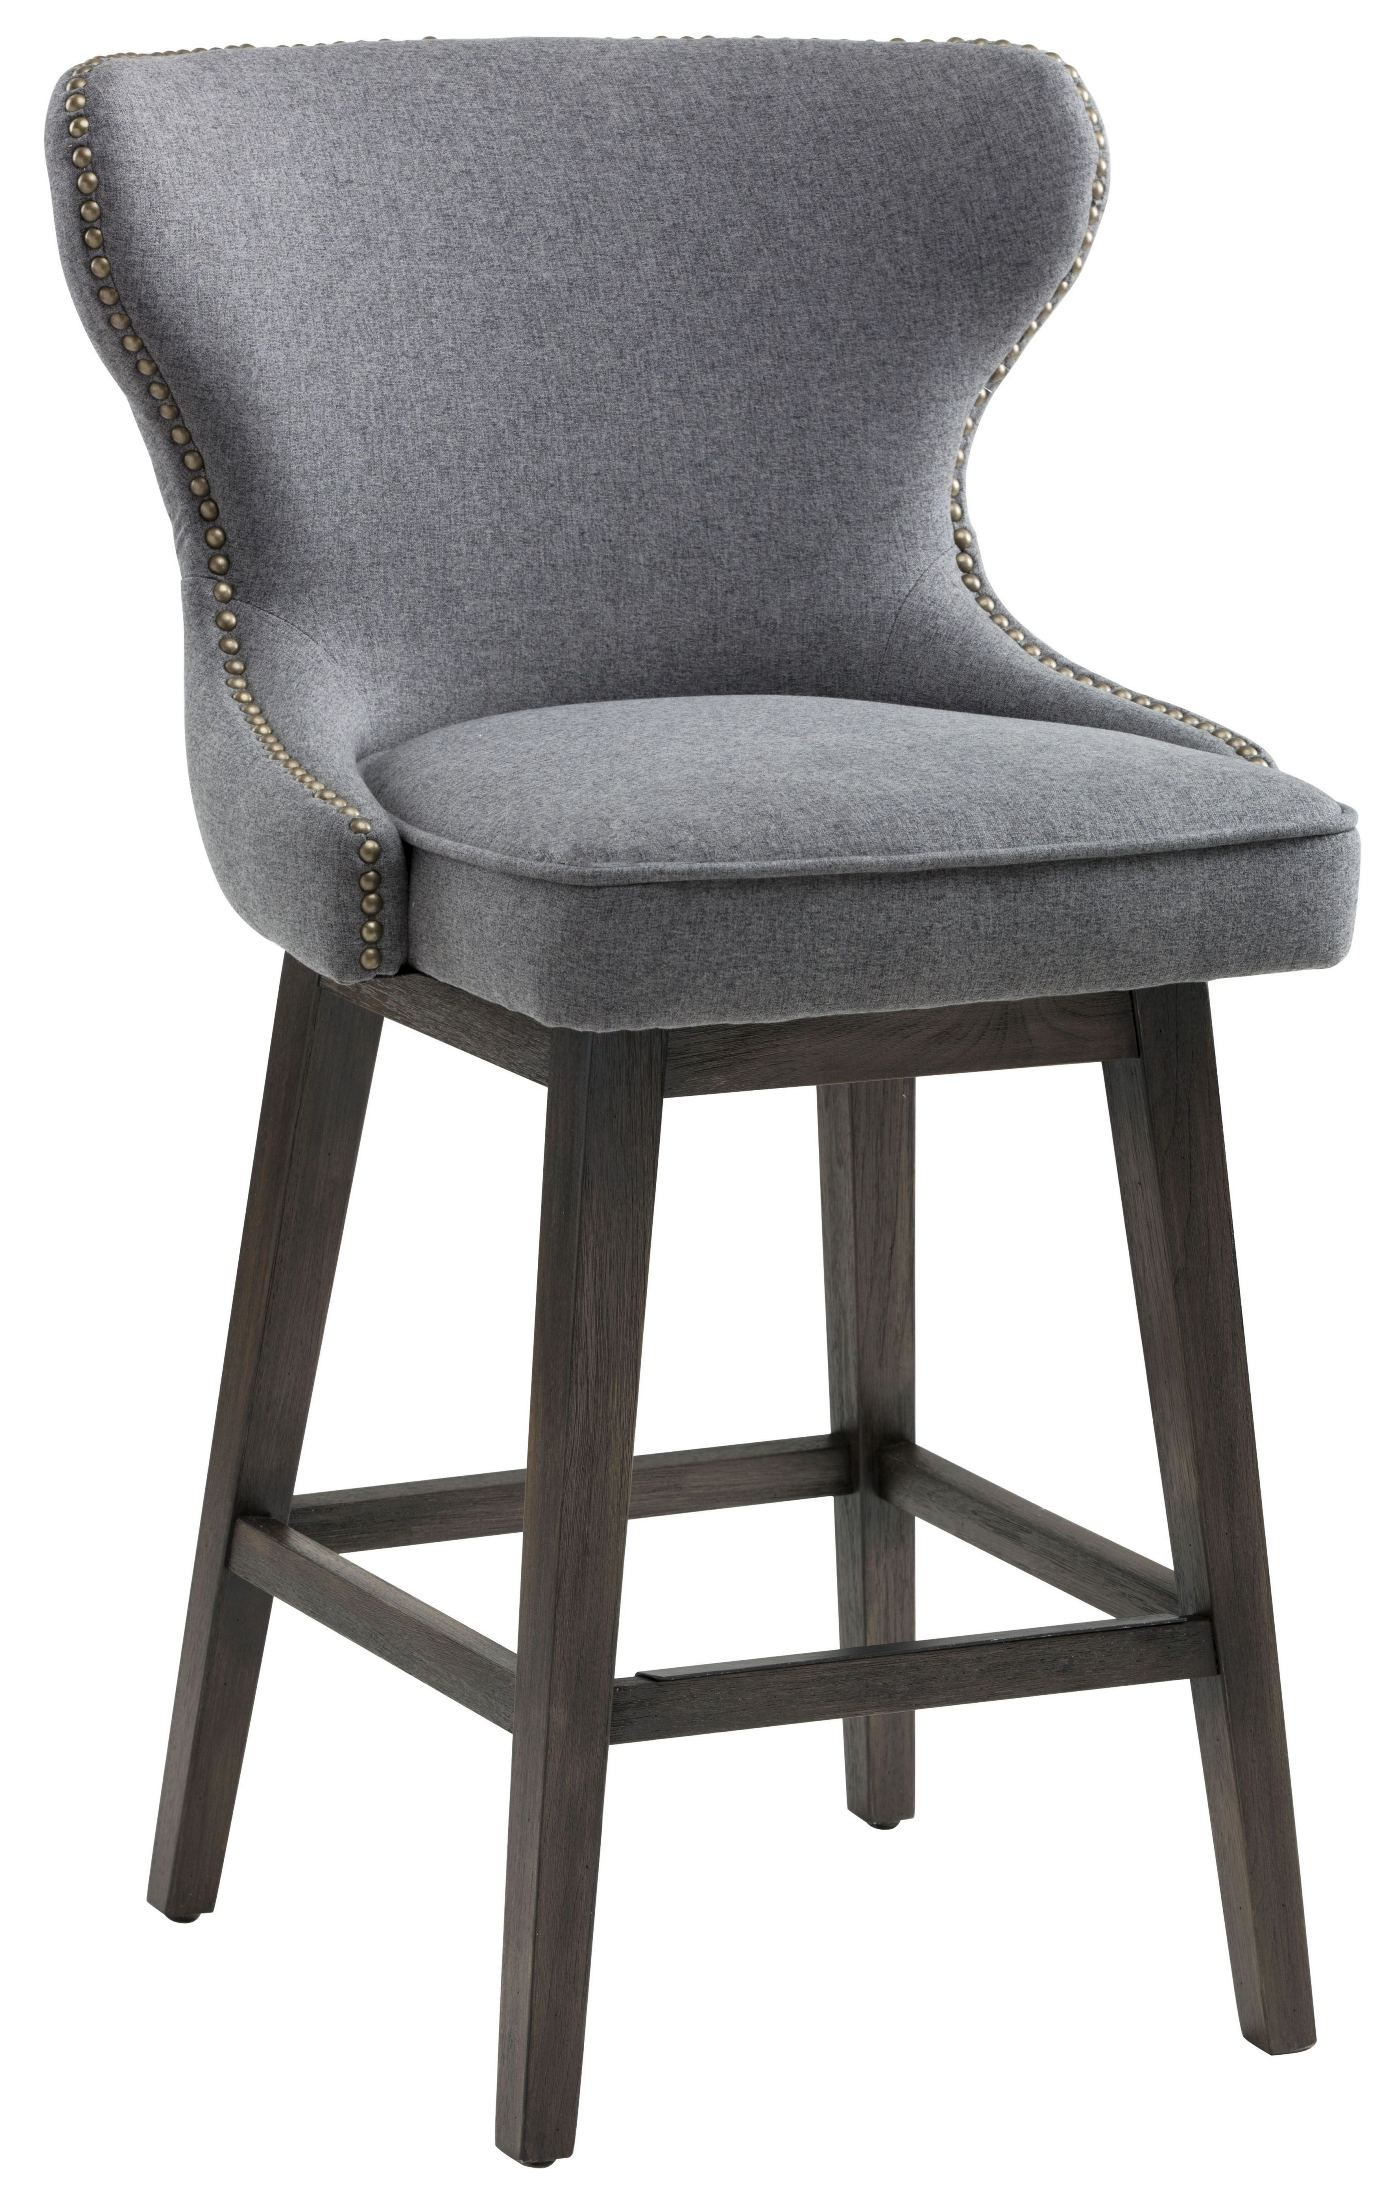 Ariana Dark Grey Fabric Swivel Counter Stool From Sunpan